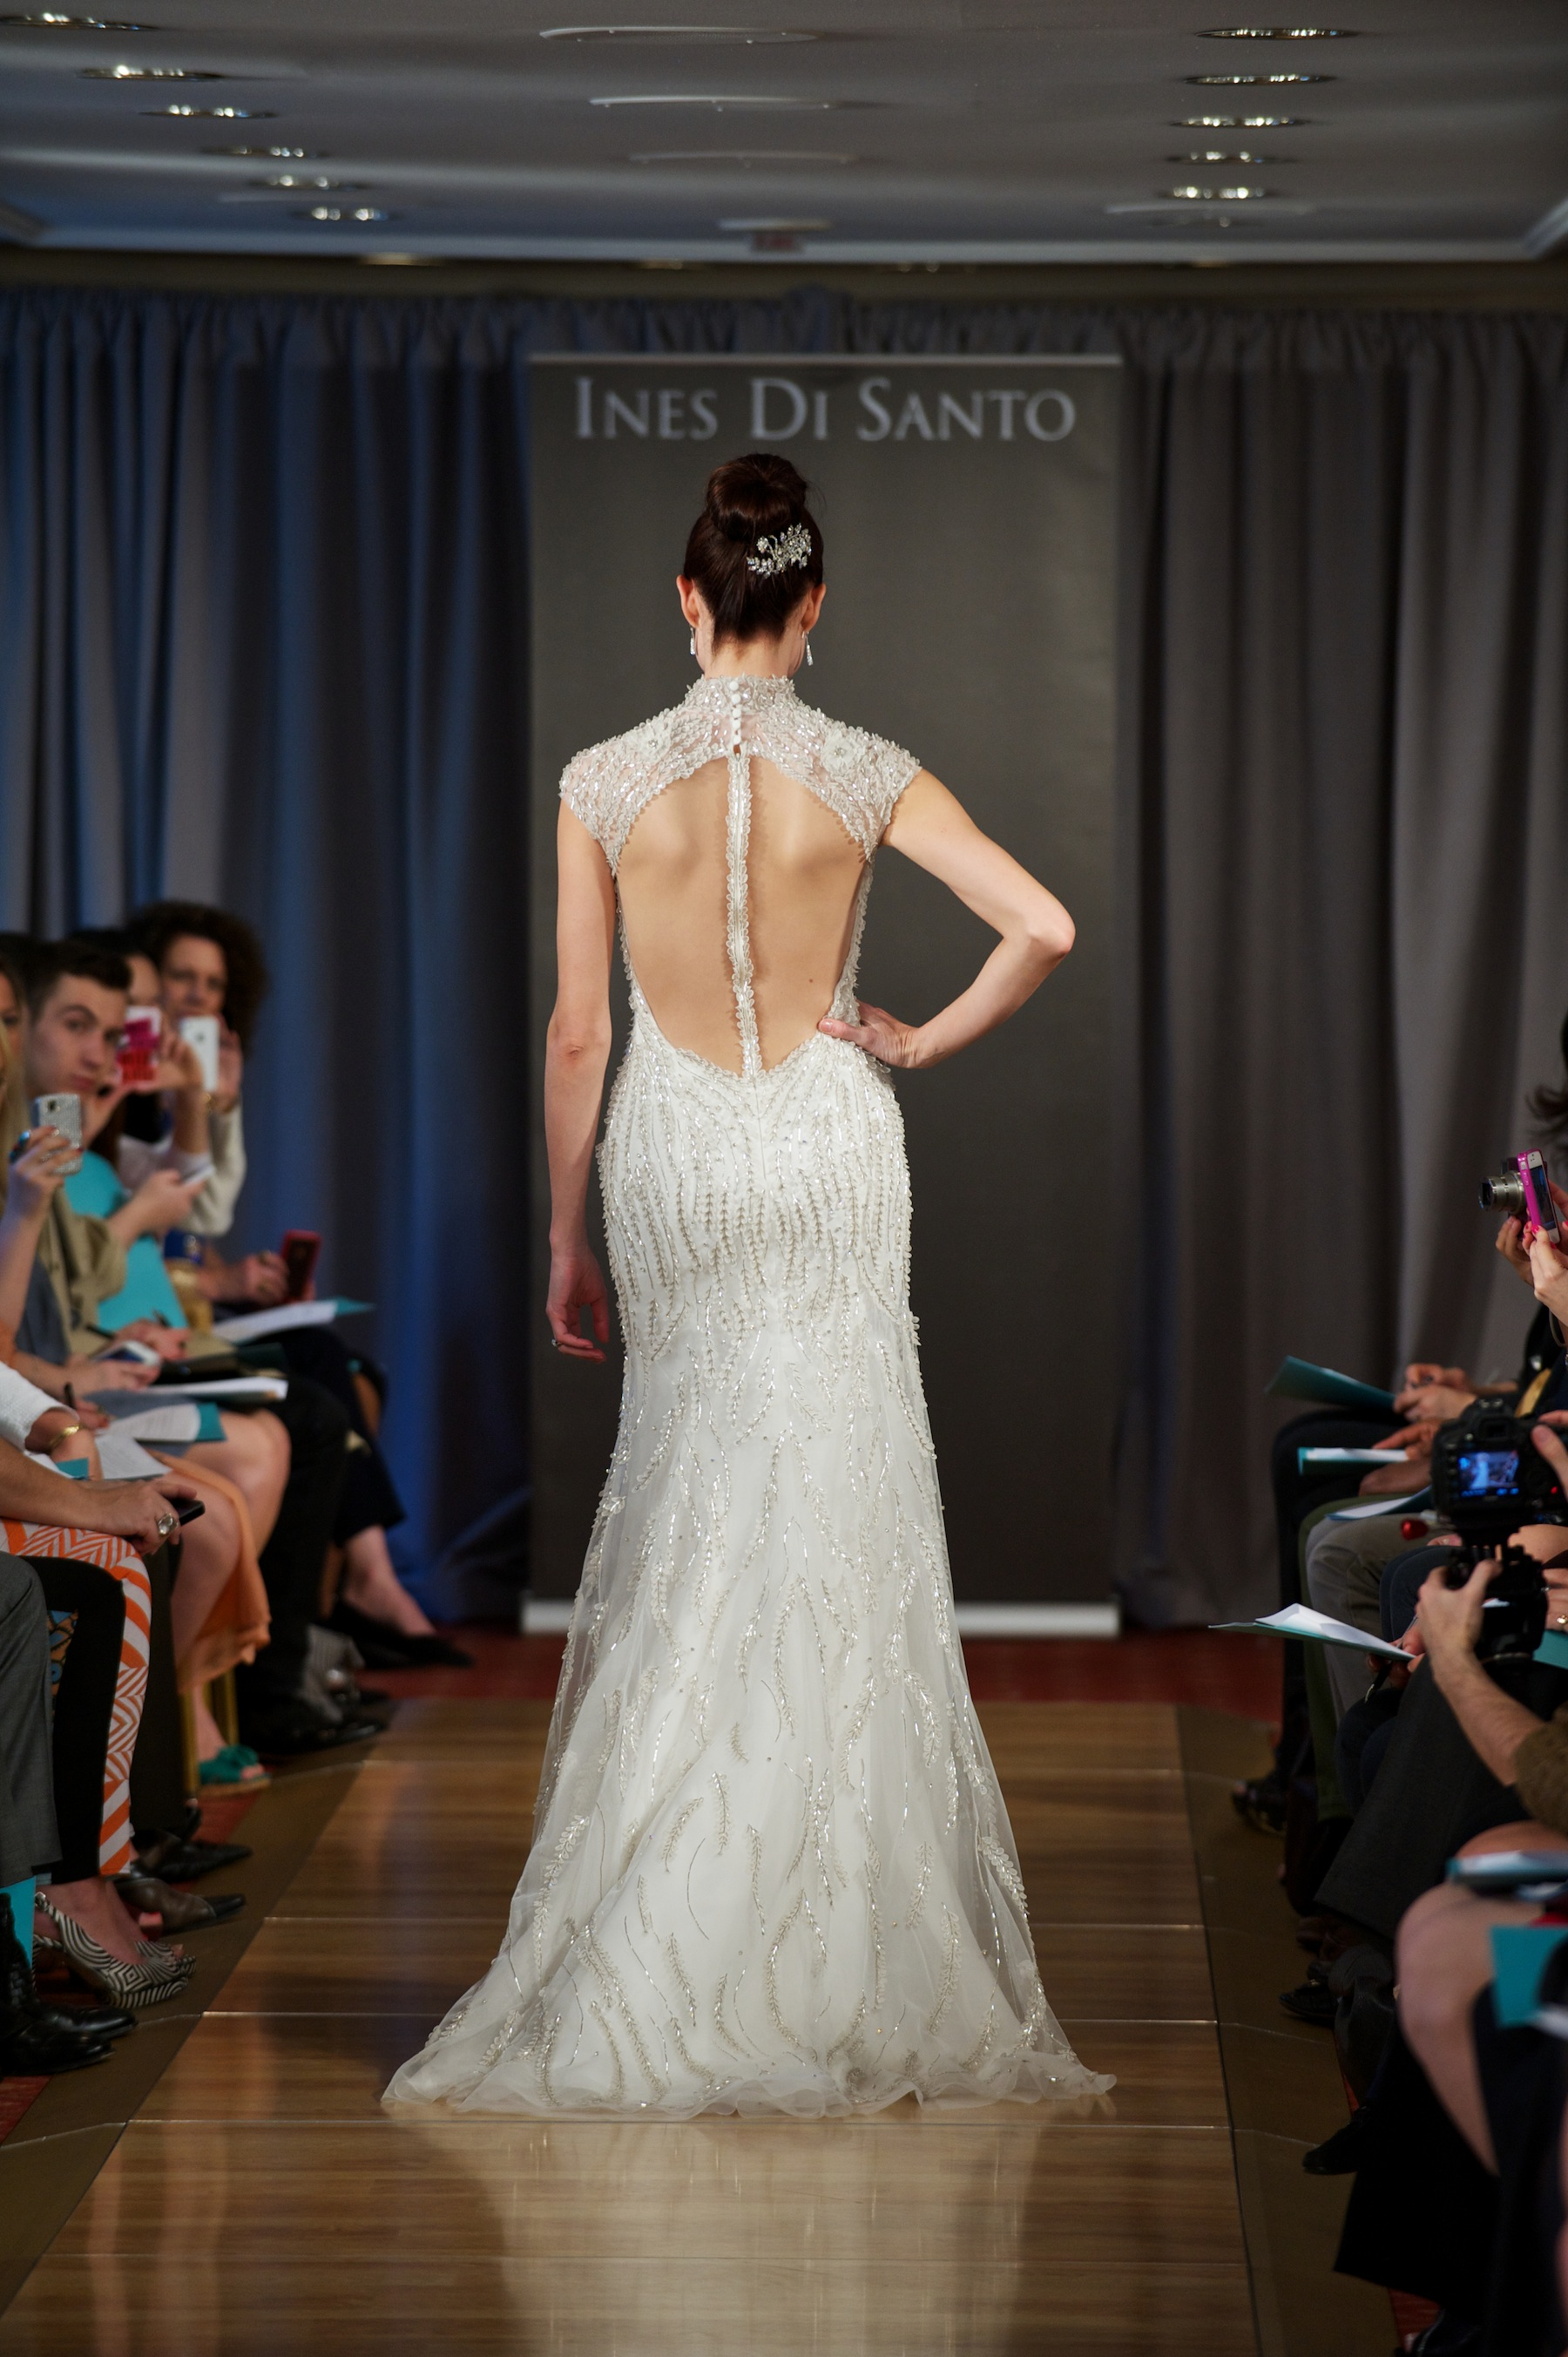 Wedding dress spring 2013 bridal gowns ines di santo 25 for Ines di santo wedding dress